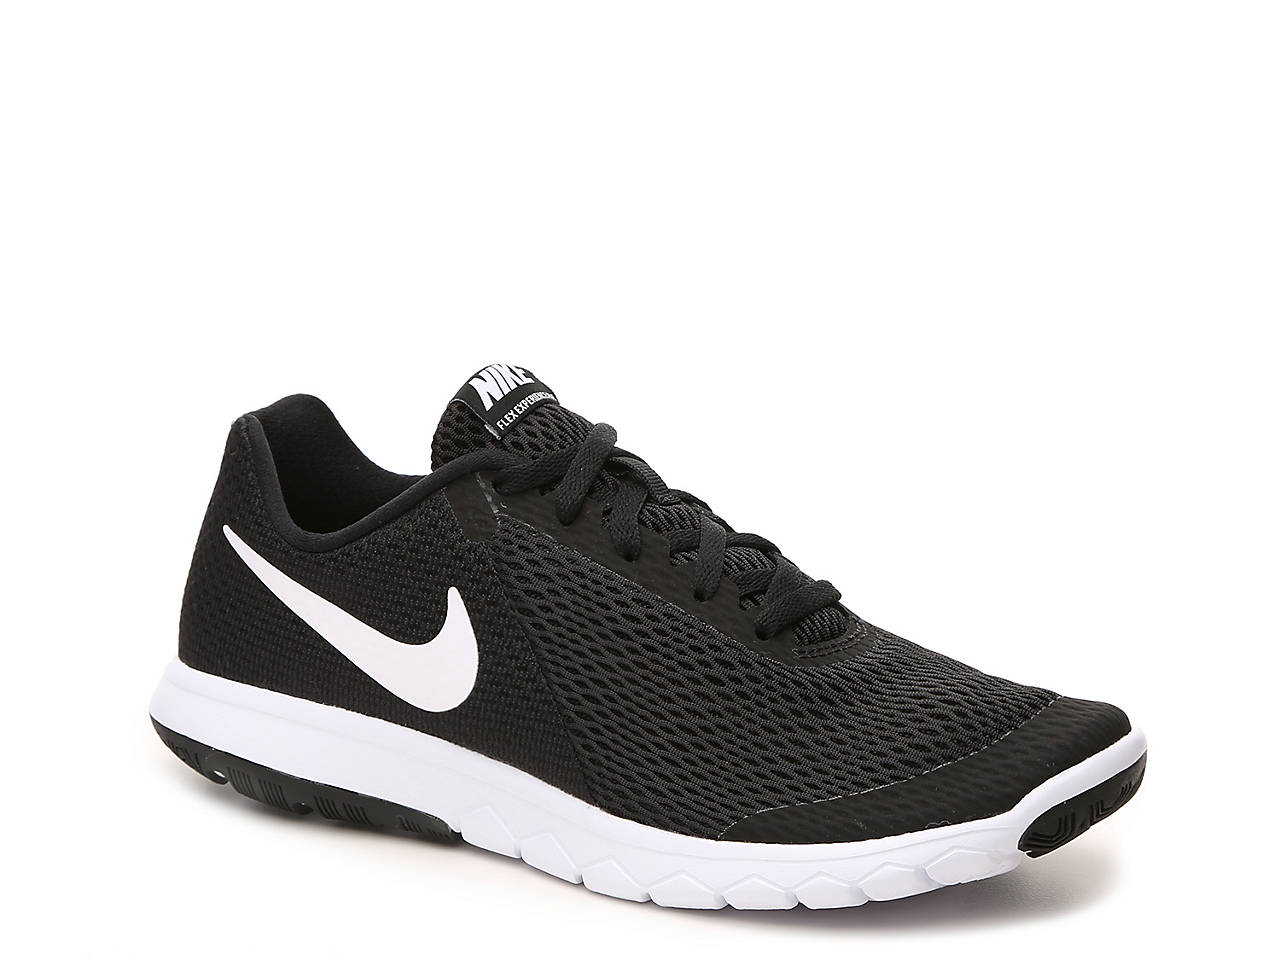 Nike Flex Experience Run 6 Lightweight Running Shoe ...